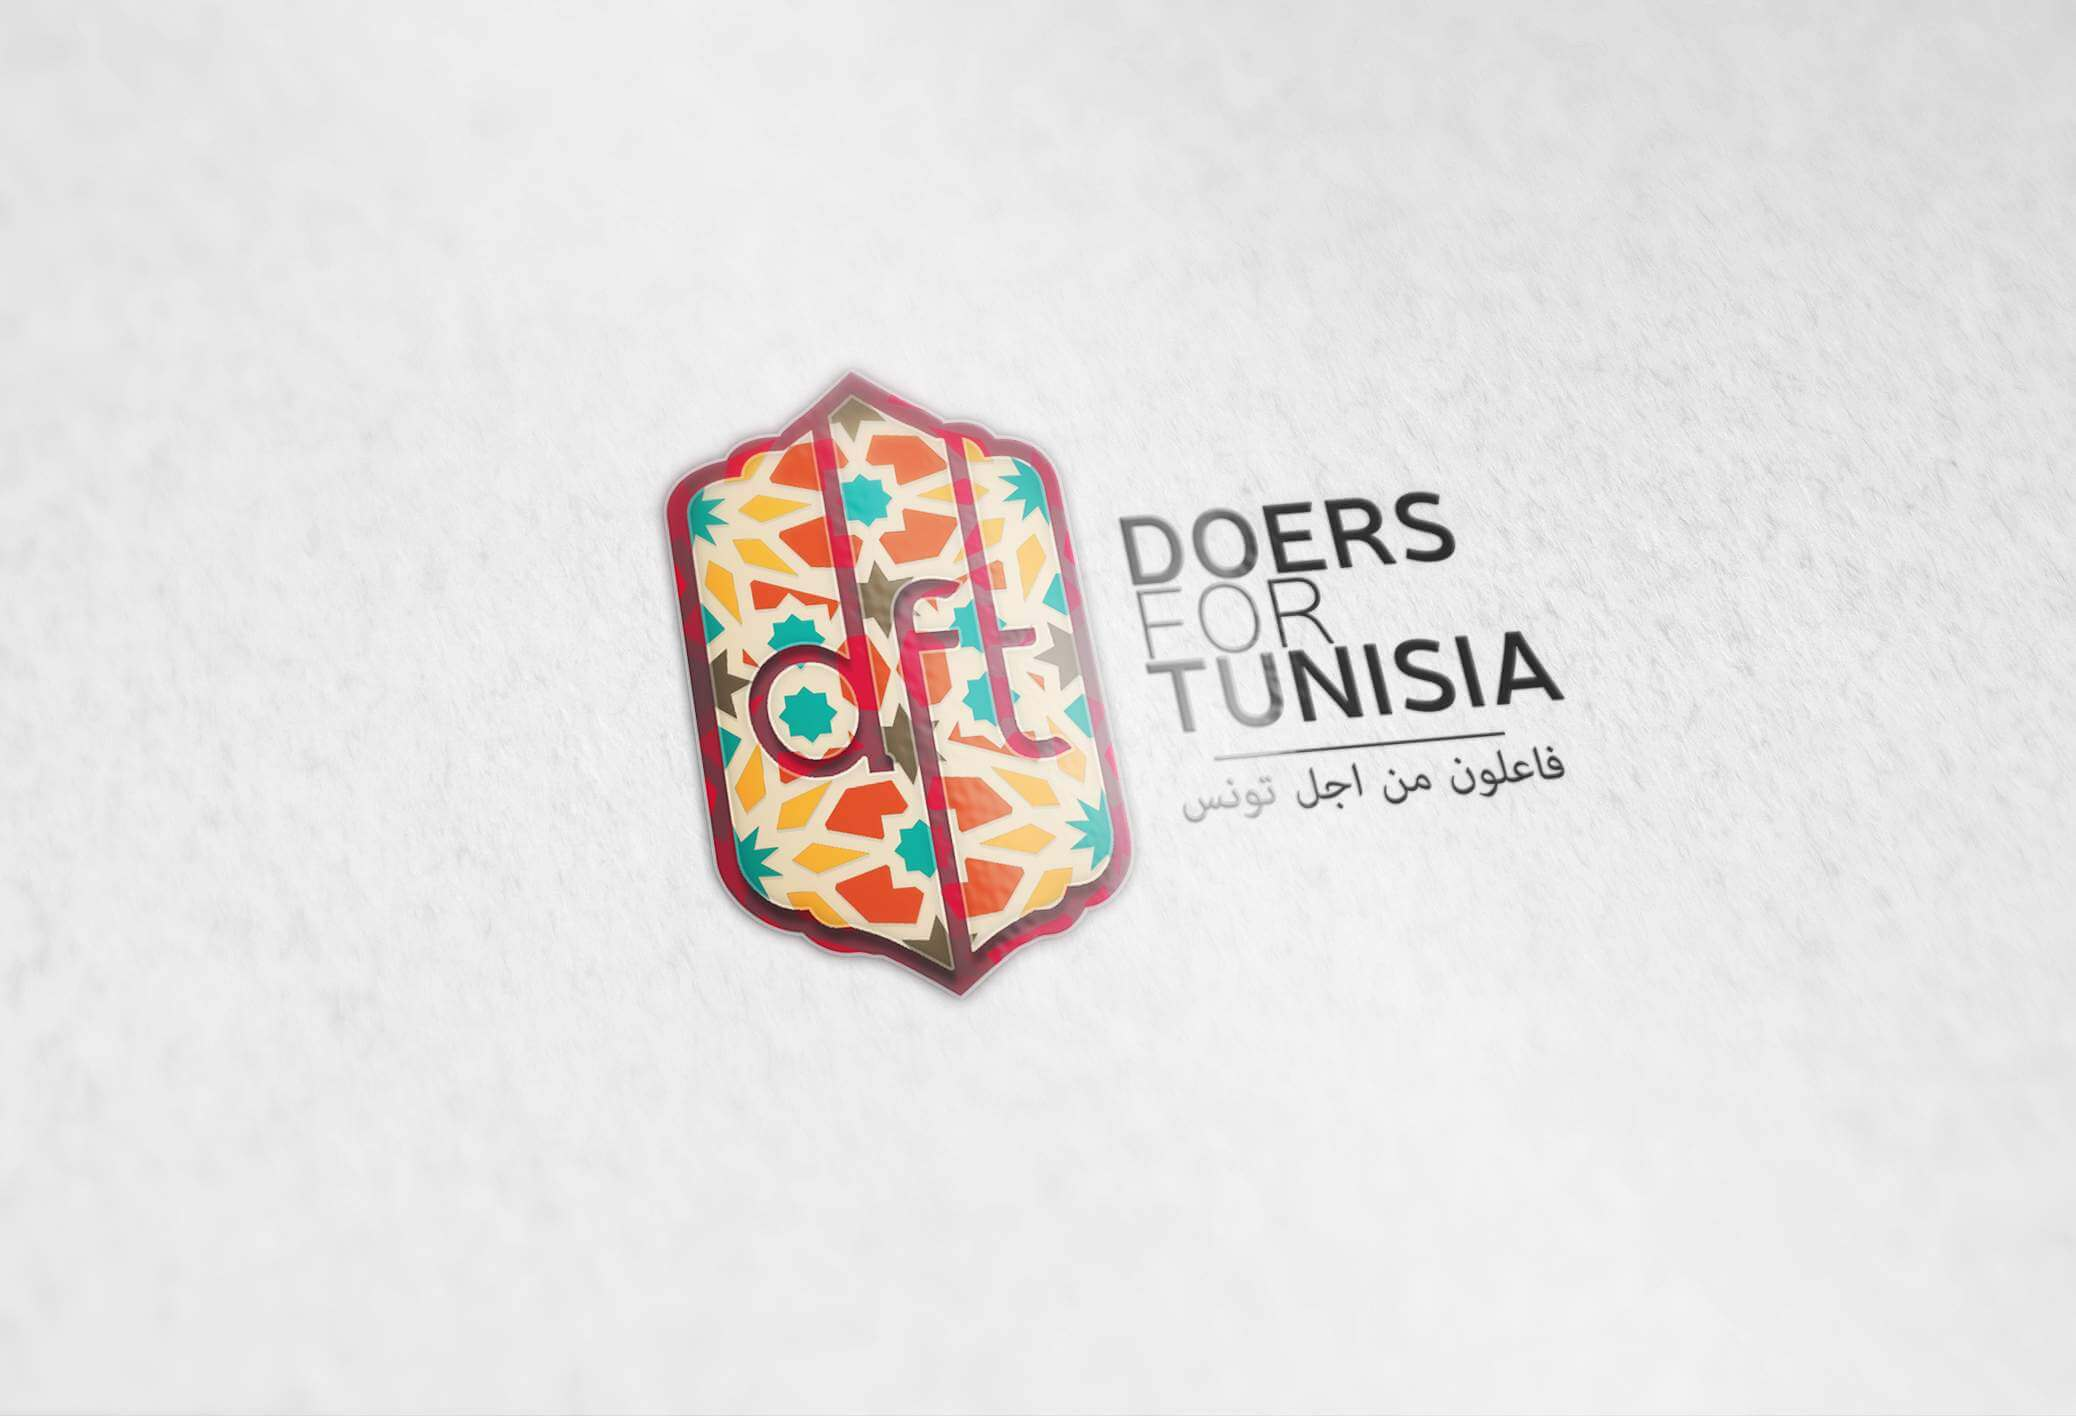 dft Design Logo Doers for tunisia Charte Graphique